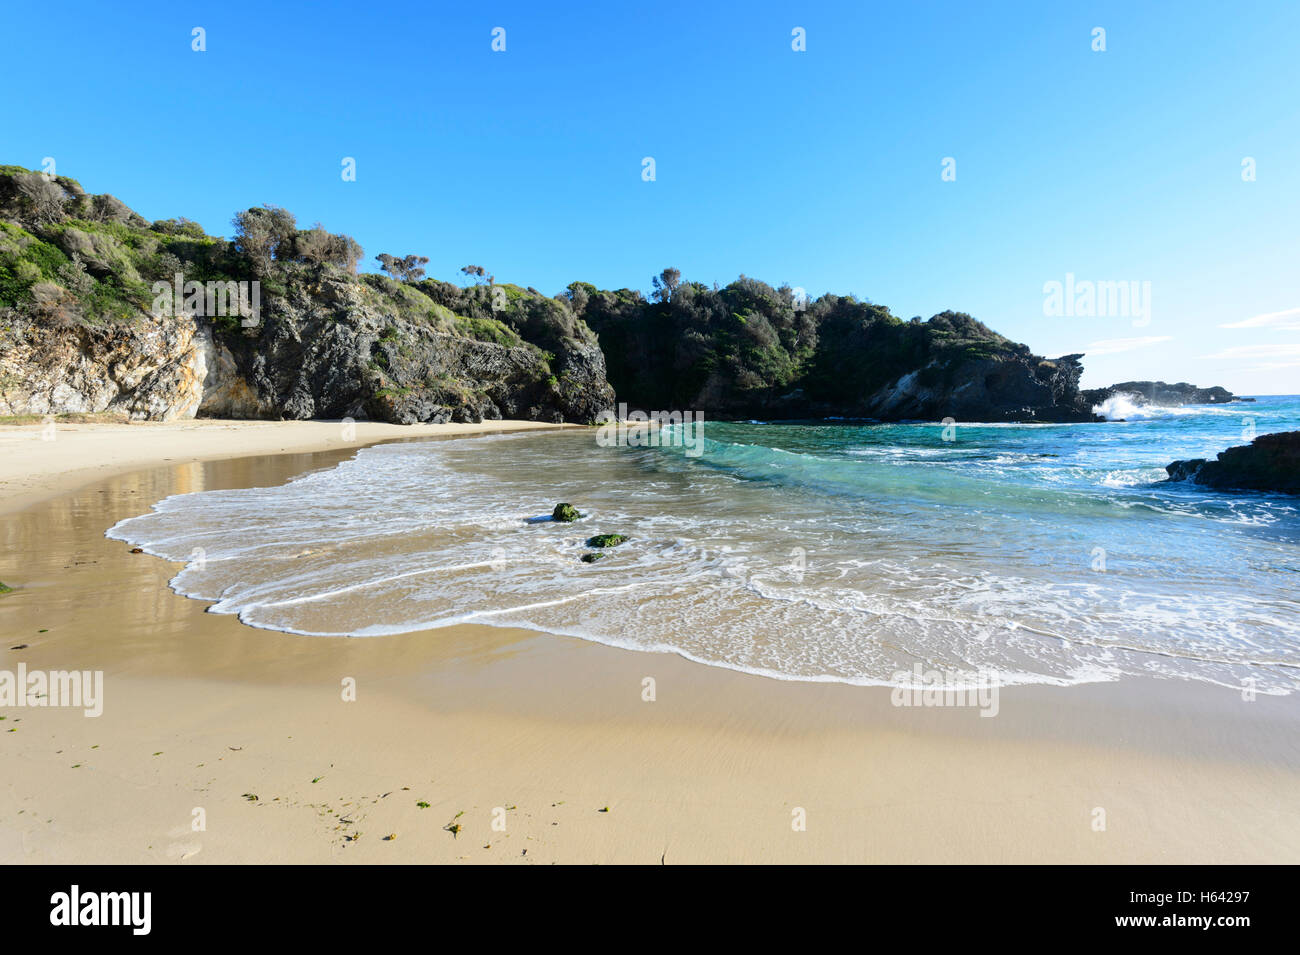 North end of Surf Beach, Narooma, New South Wales, NSW, Australia - Stock Image